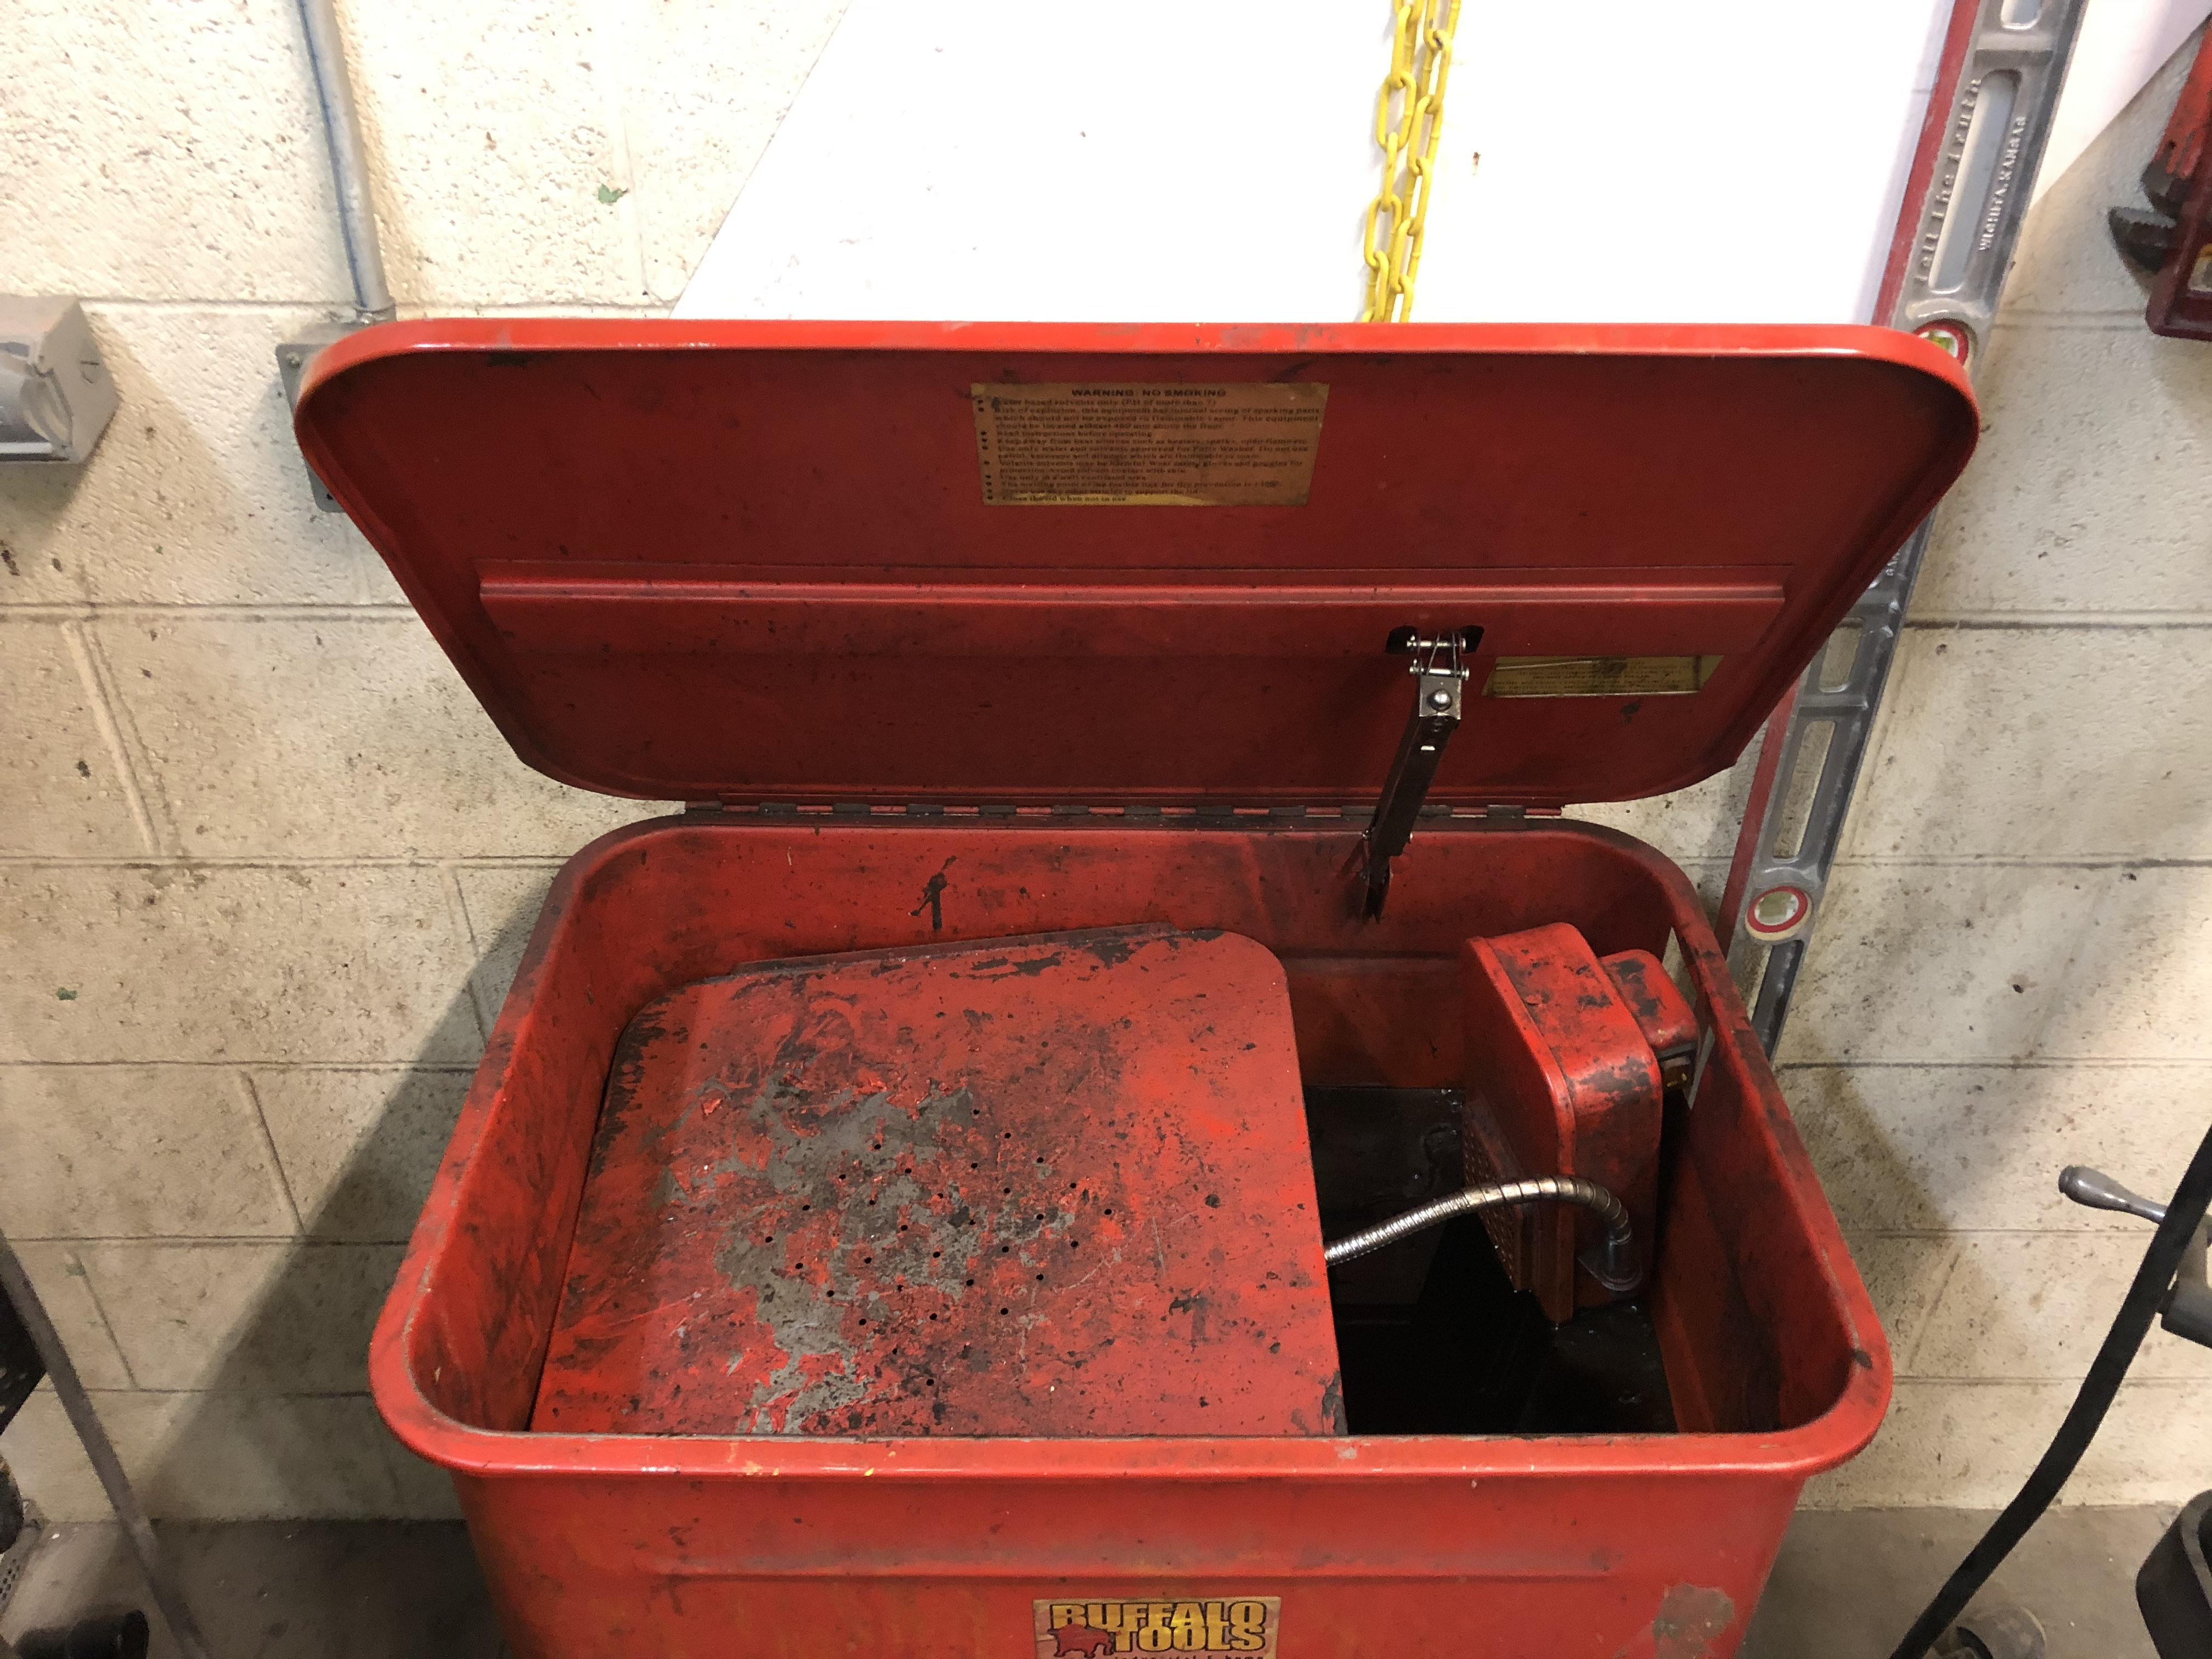 Buffalo Tools Parts Cleaner - Image 2 of 3